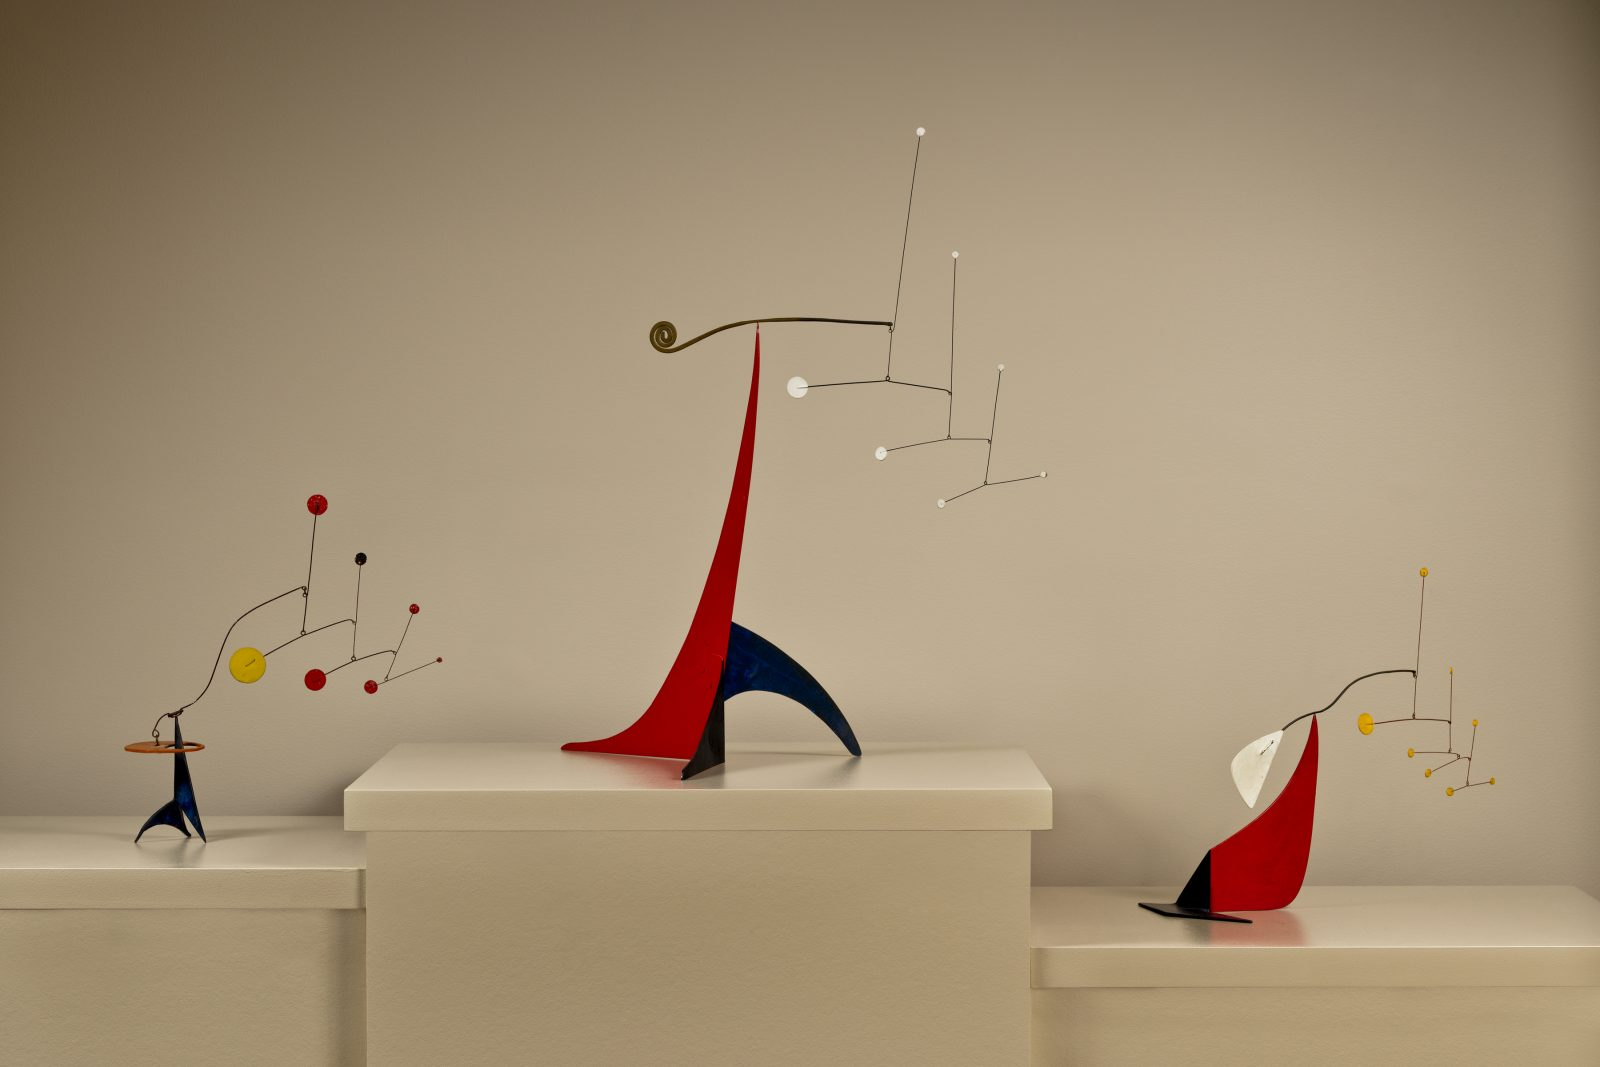 This photograph shows three colorful mobiles by Alexander Calder.